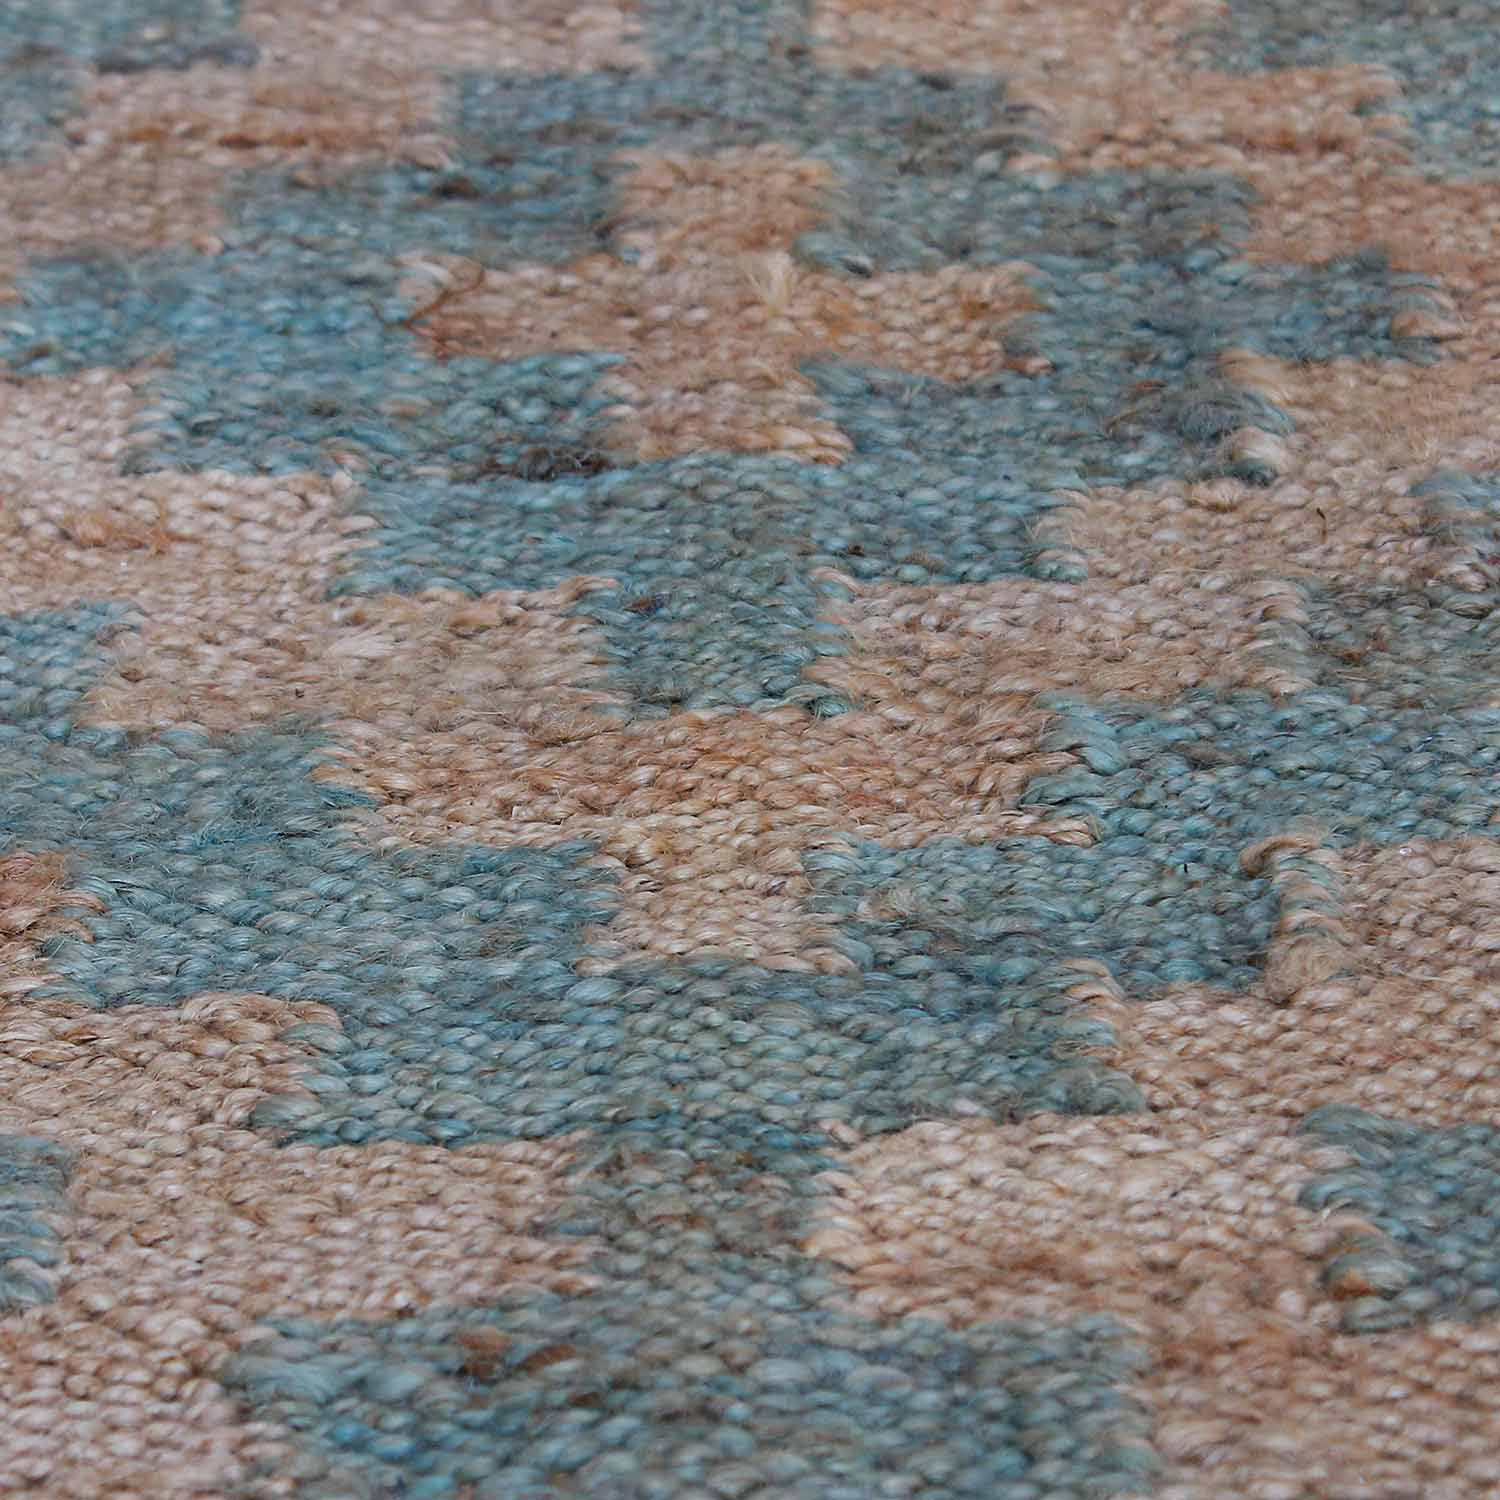 Uttermost Falco 9 x 12 Rug - Teal